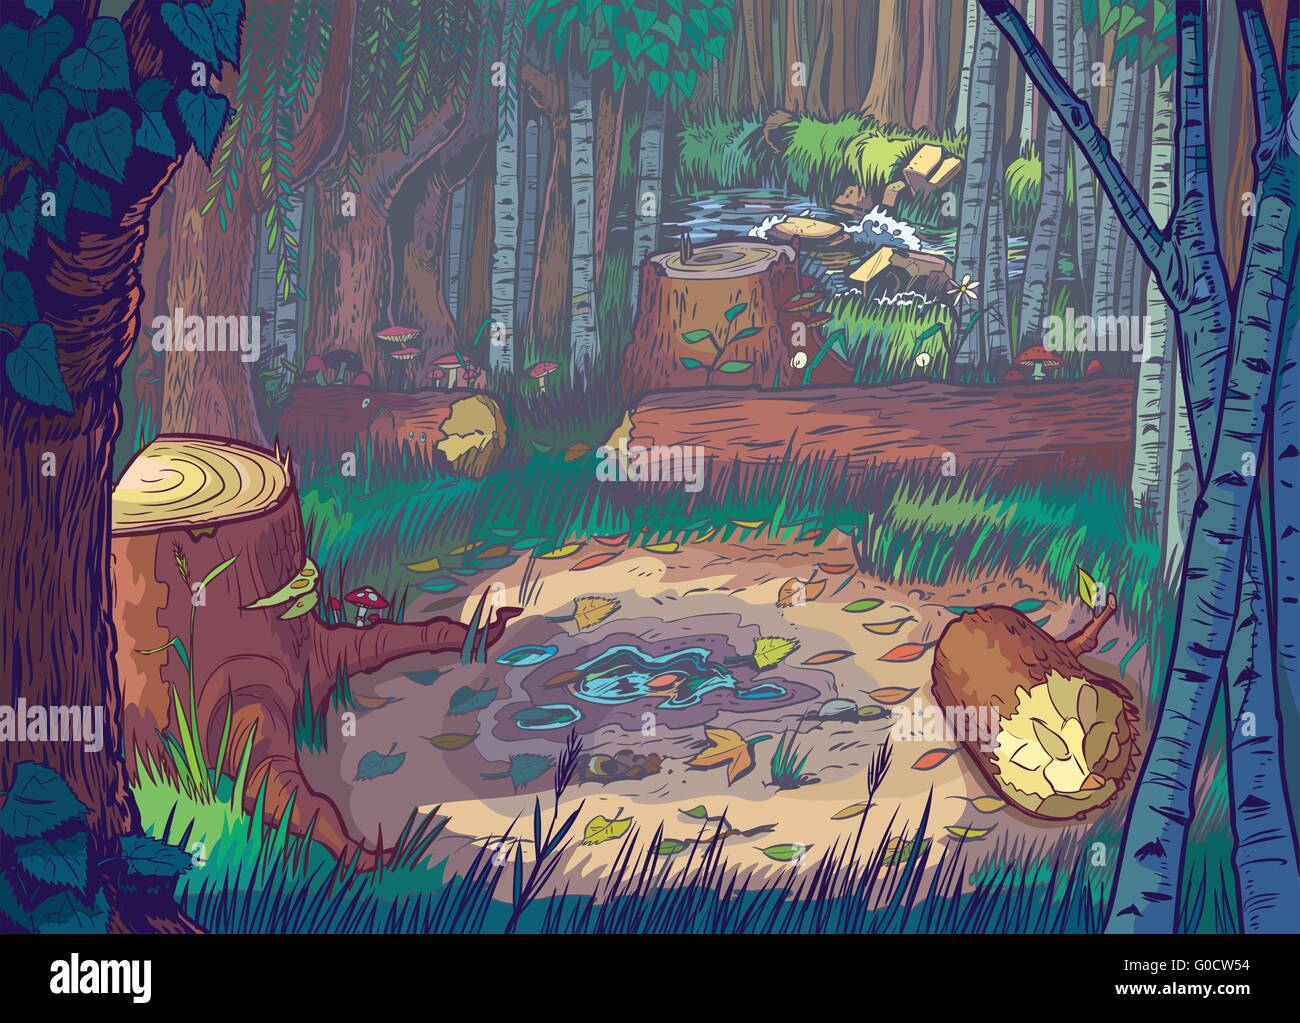 Vector Cartoon Illustration of a forest clearing scene with felled trees and logs and a stream or river in the background. - Stock Image